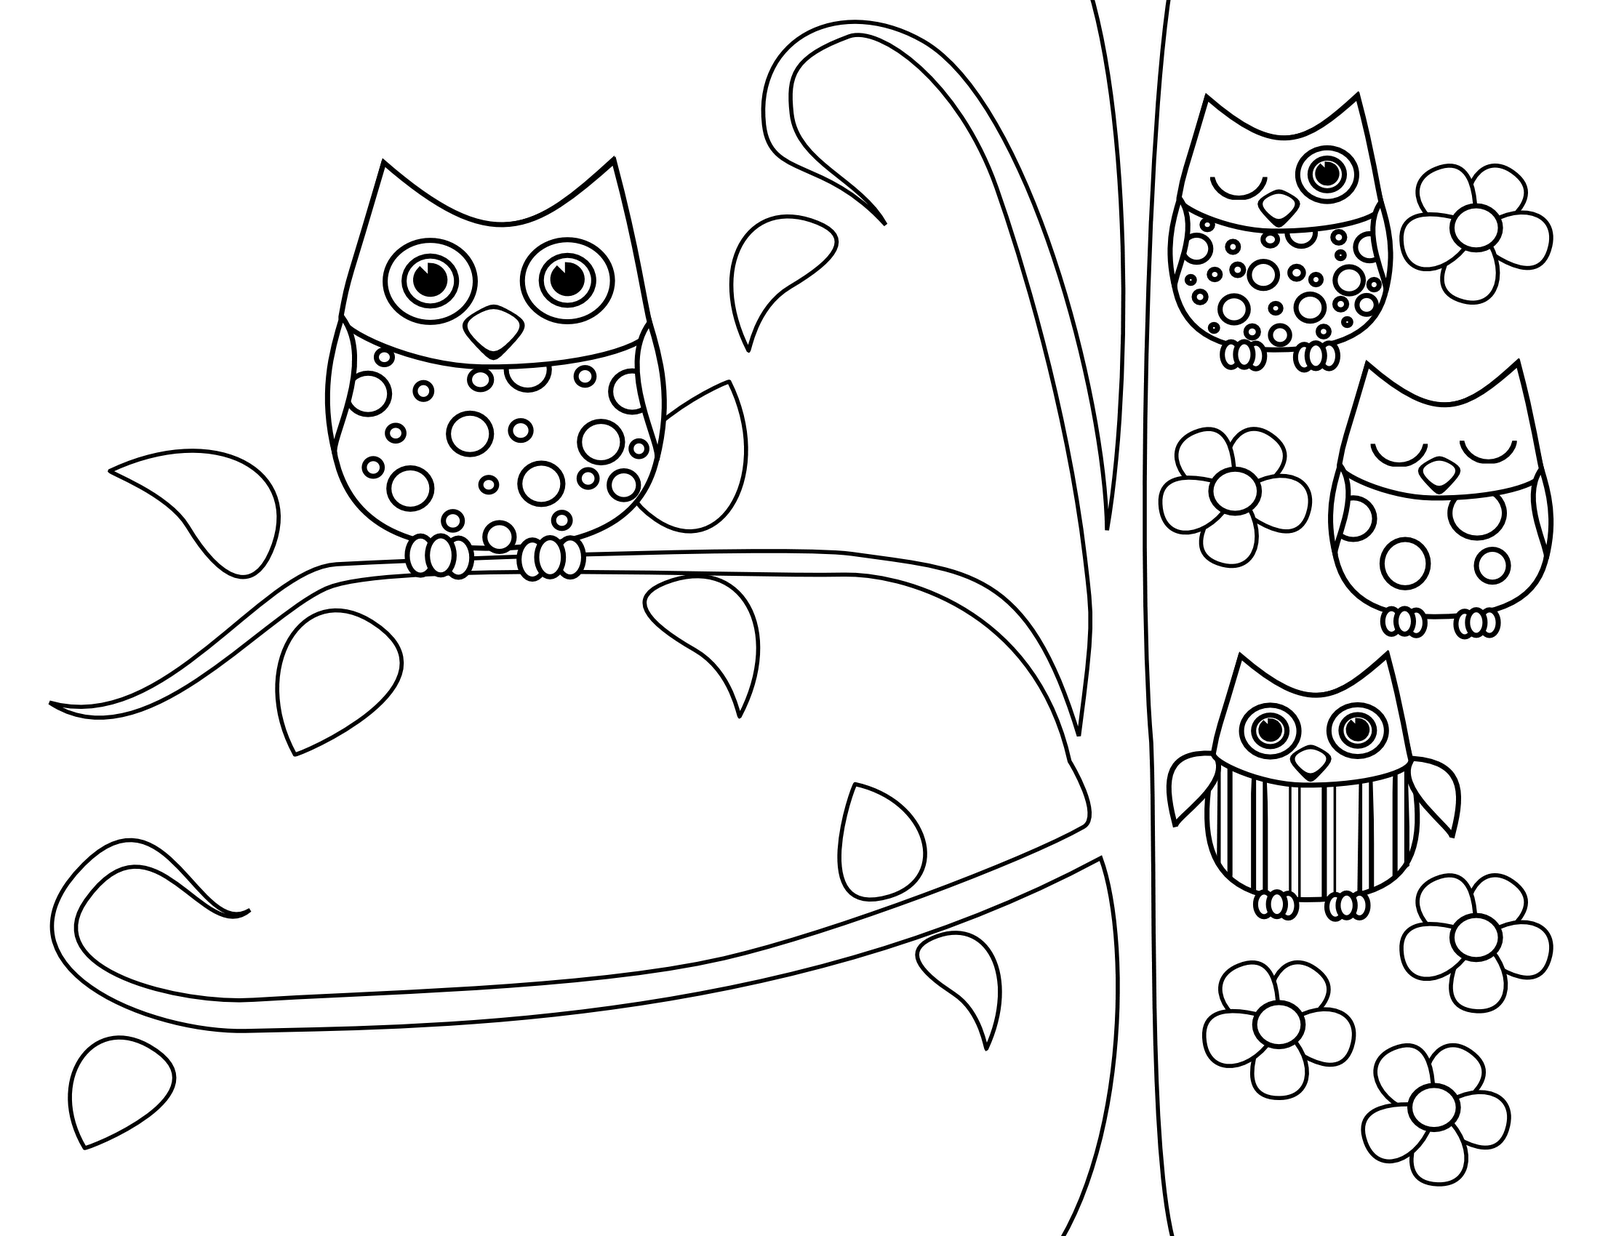 owls coloring pages 16 pictures colorinenet 3358 - Owl Coloring Pages For Adults